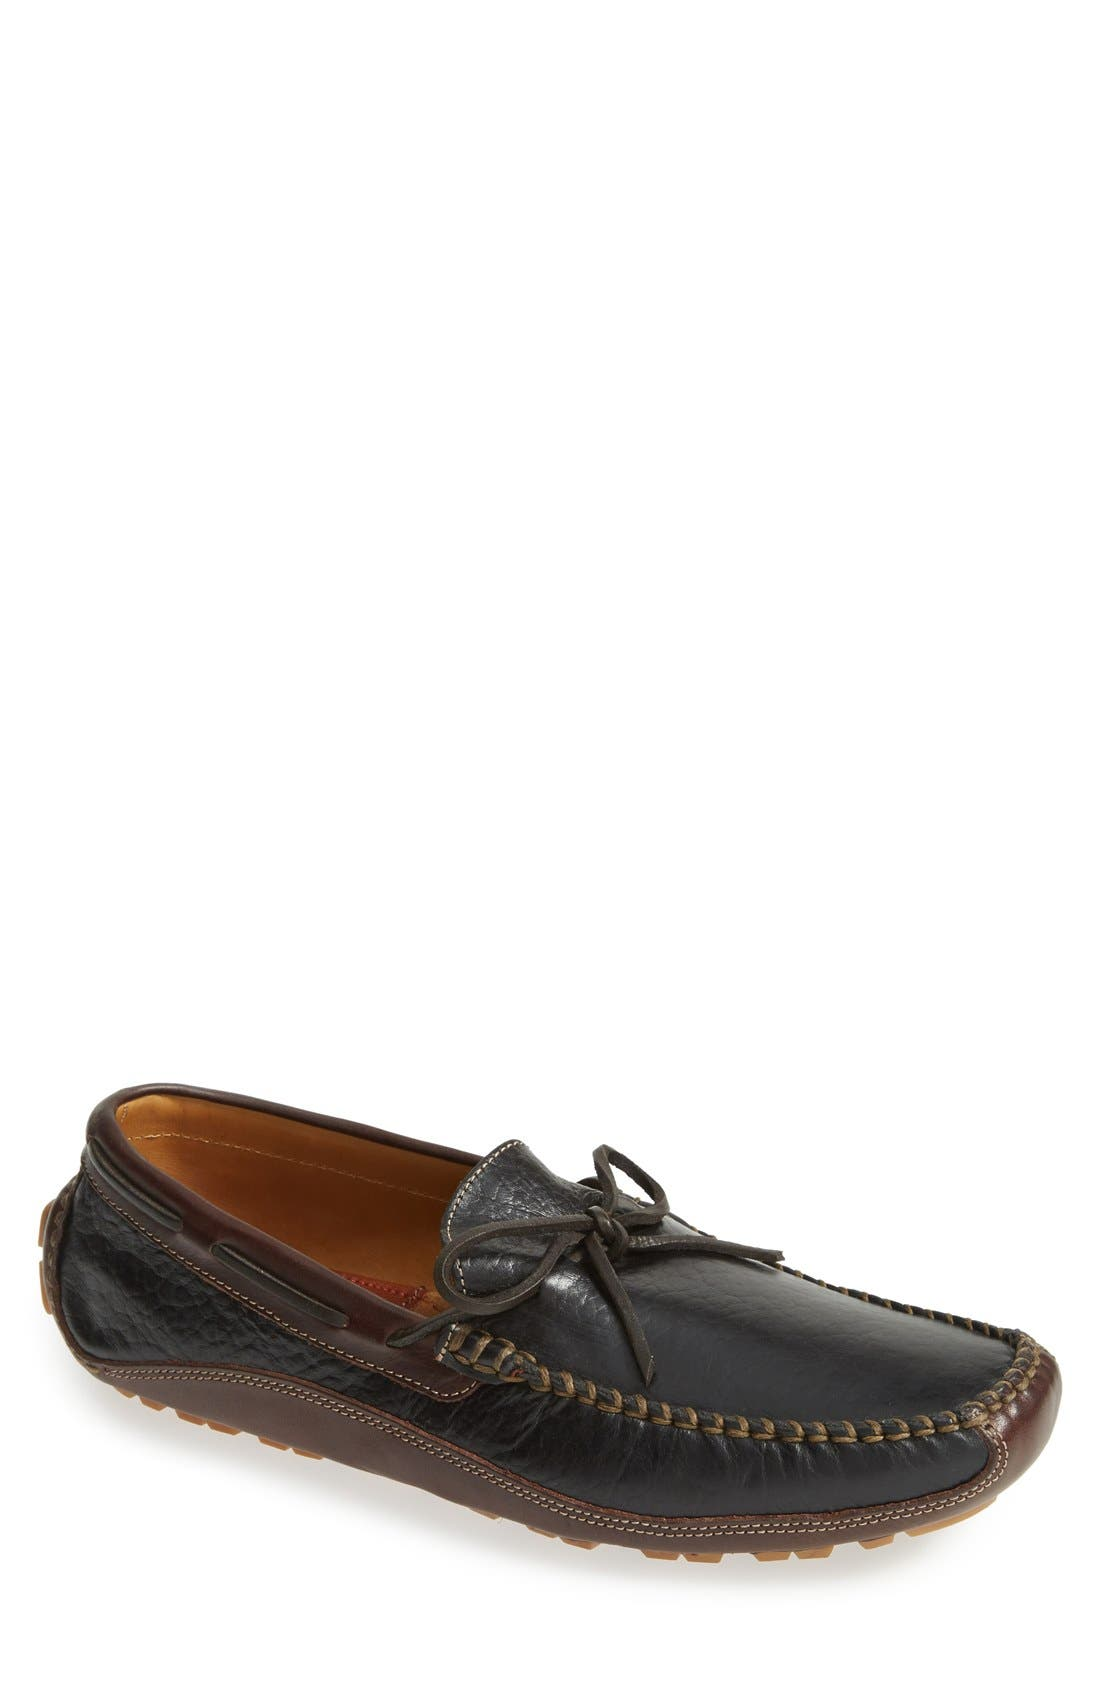 Alternate Image 1 Selected - Trask 'Drake' Leather Driving Shoe